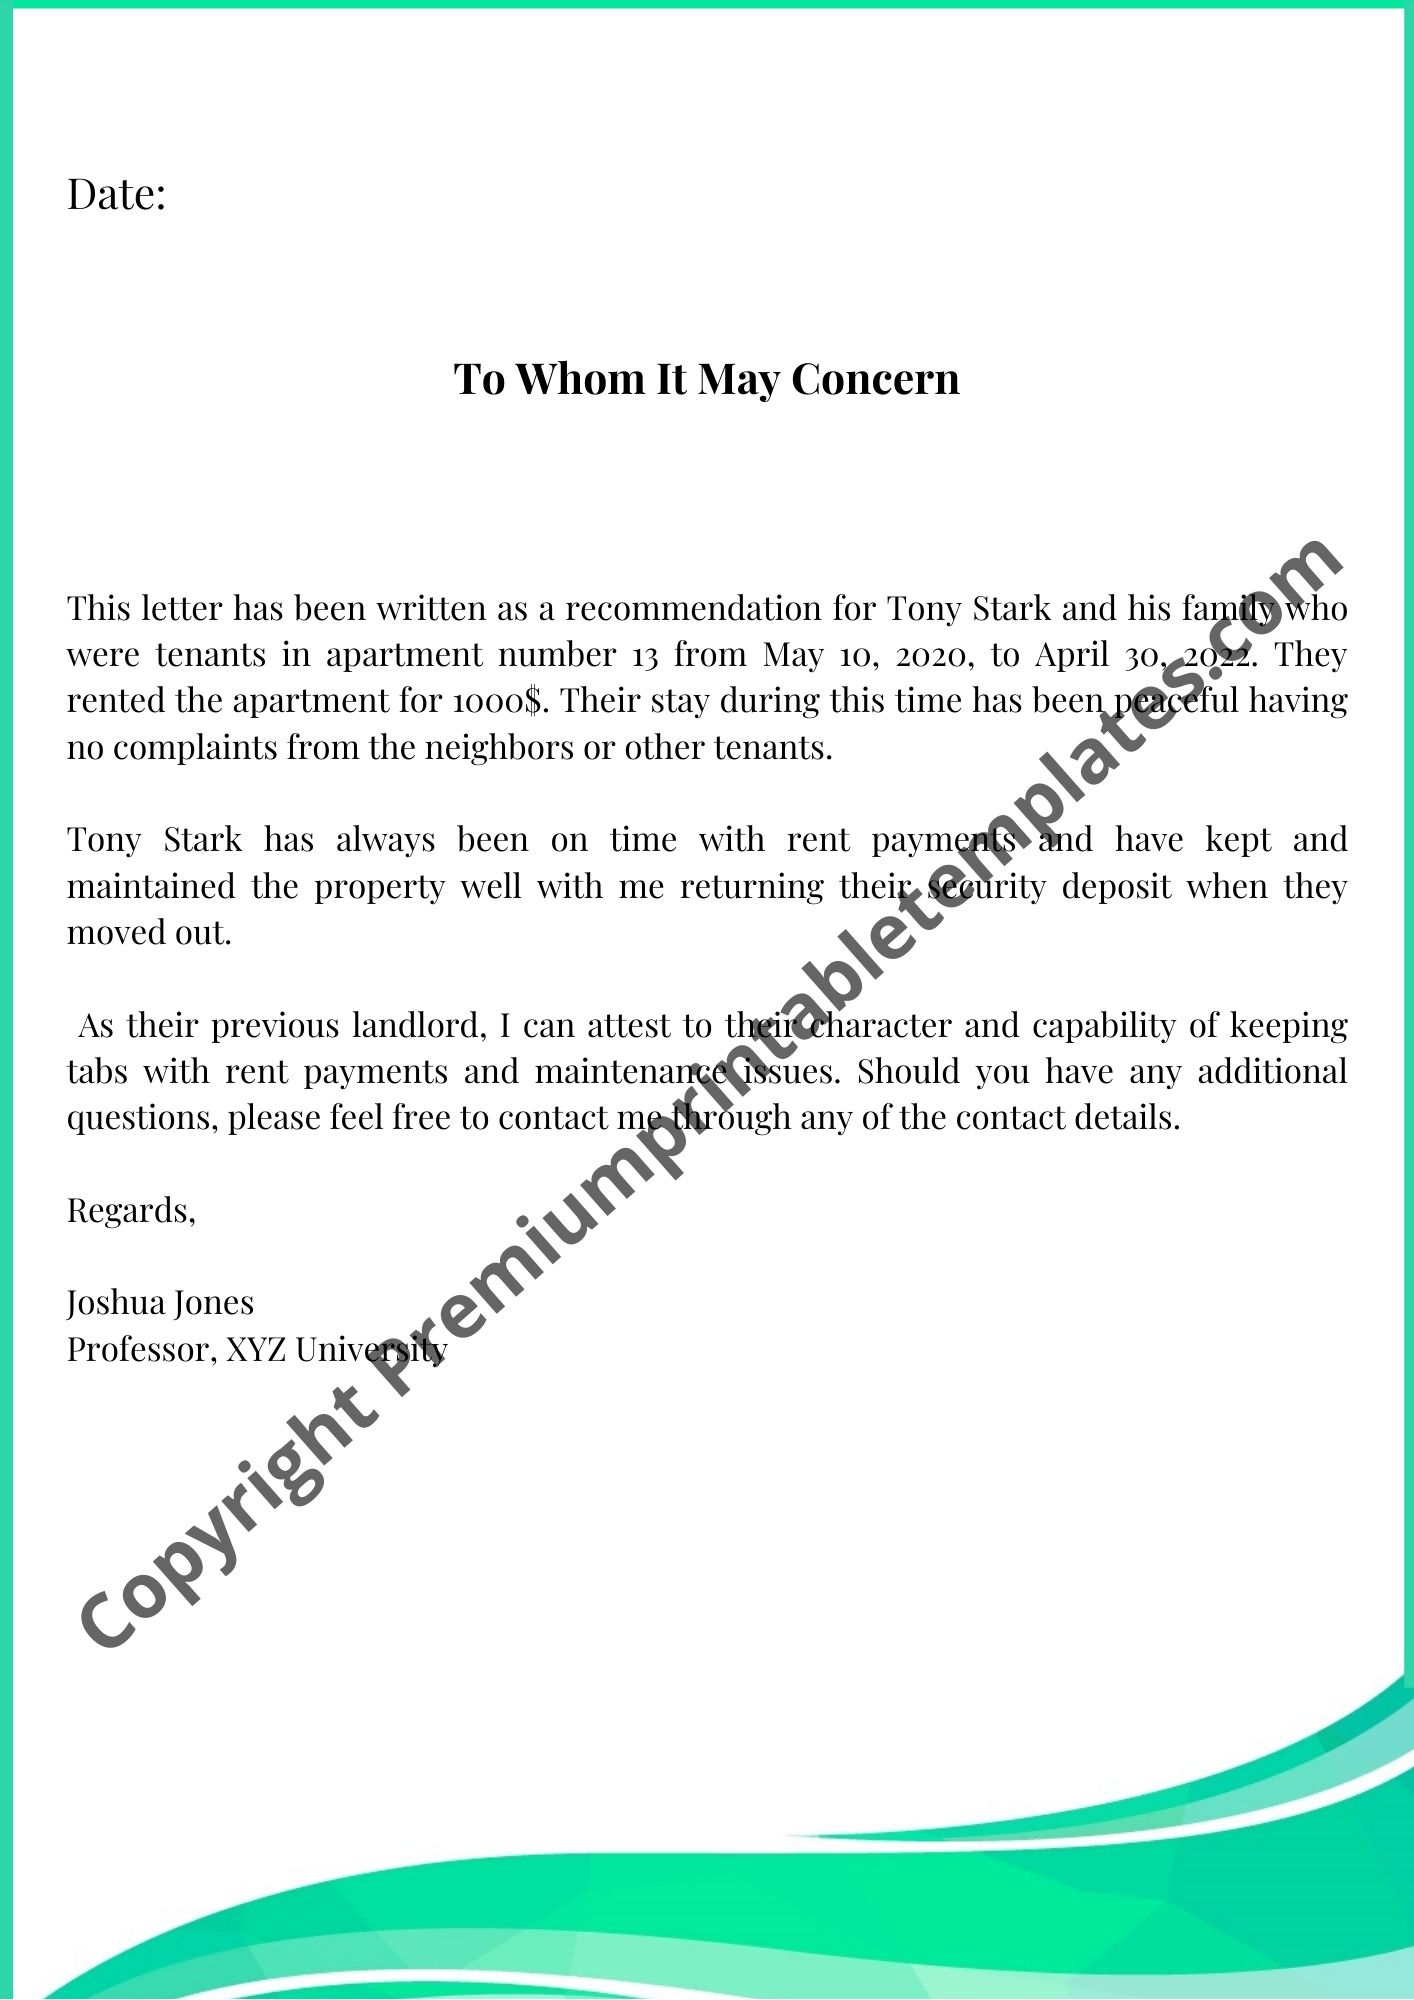 Reference Letter From Landlord from premiumprintabletemplates.com